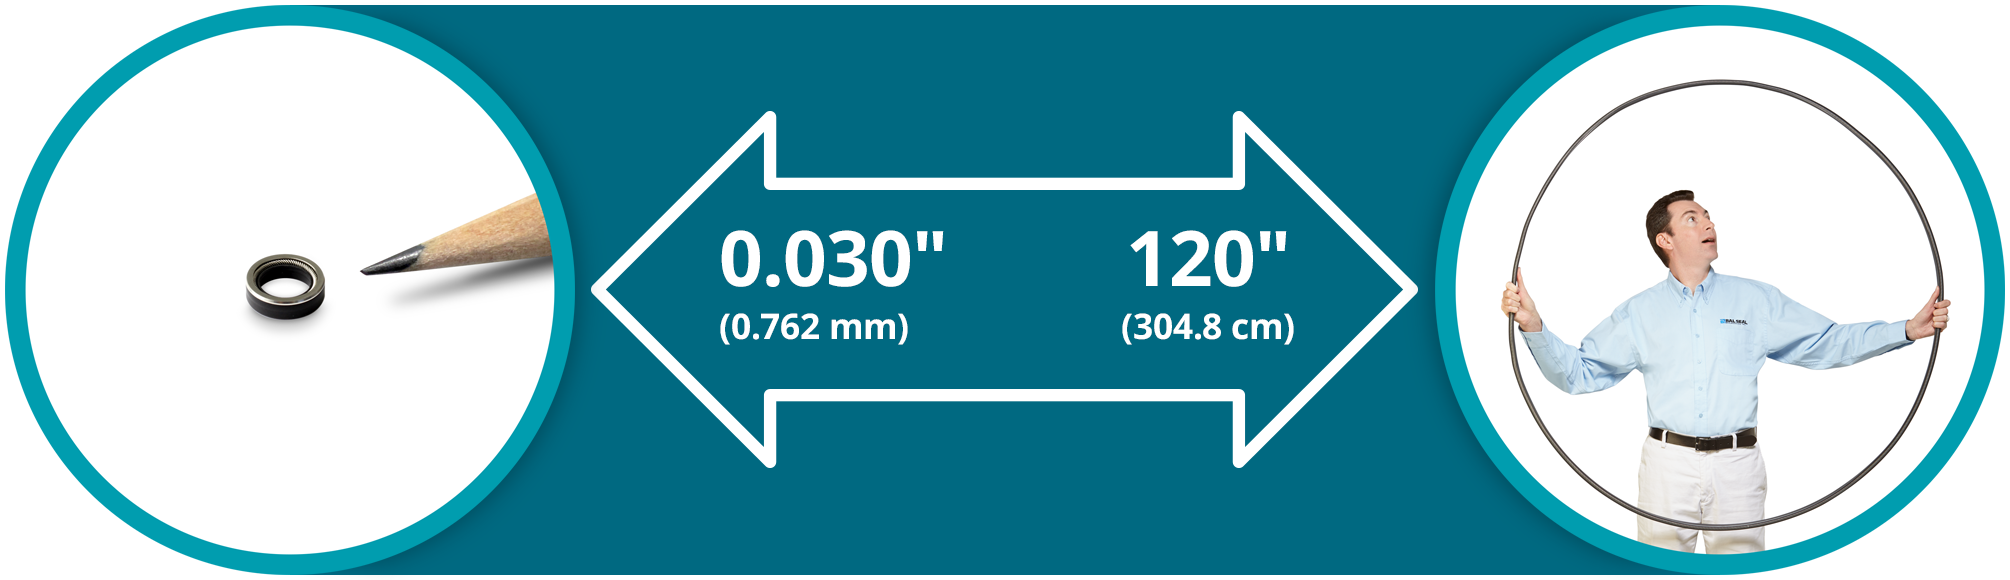 Rotary Seal Sizes